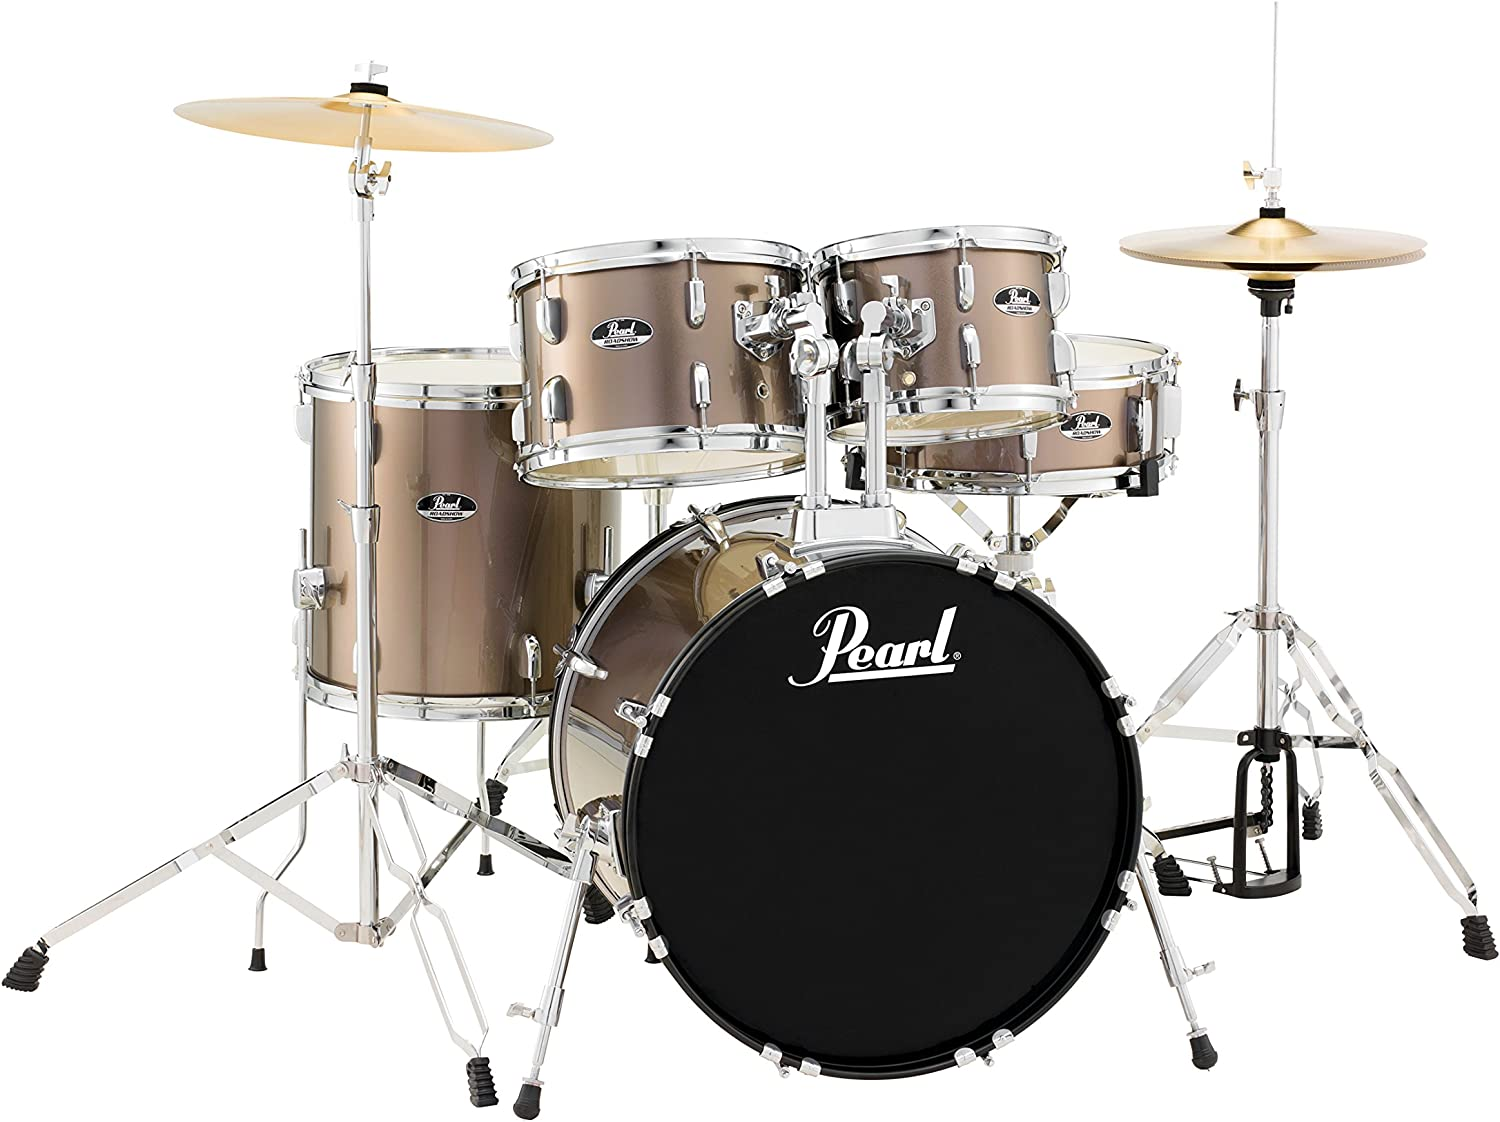 Jet Black RS505C//C31 Pearl Drum Set